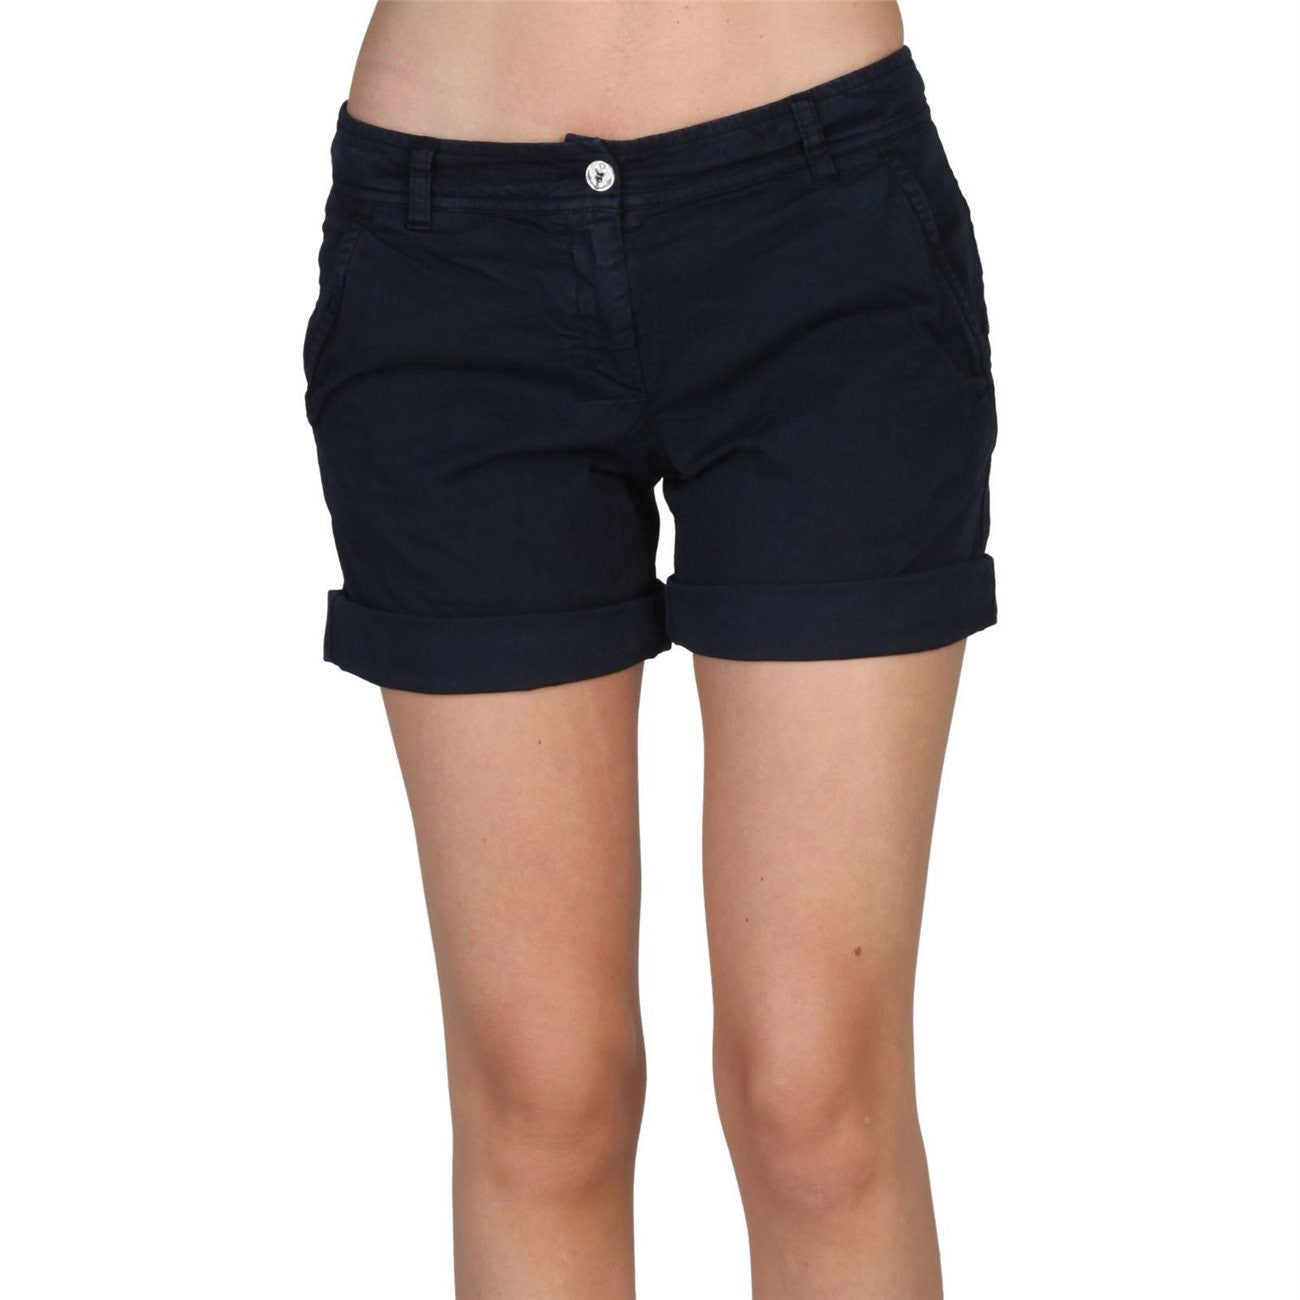 Fred Perry Womens Shorts 31502617 9608 - LeCITY